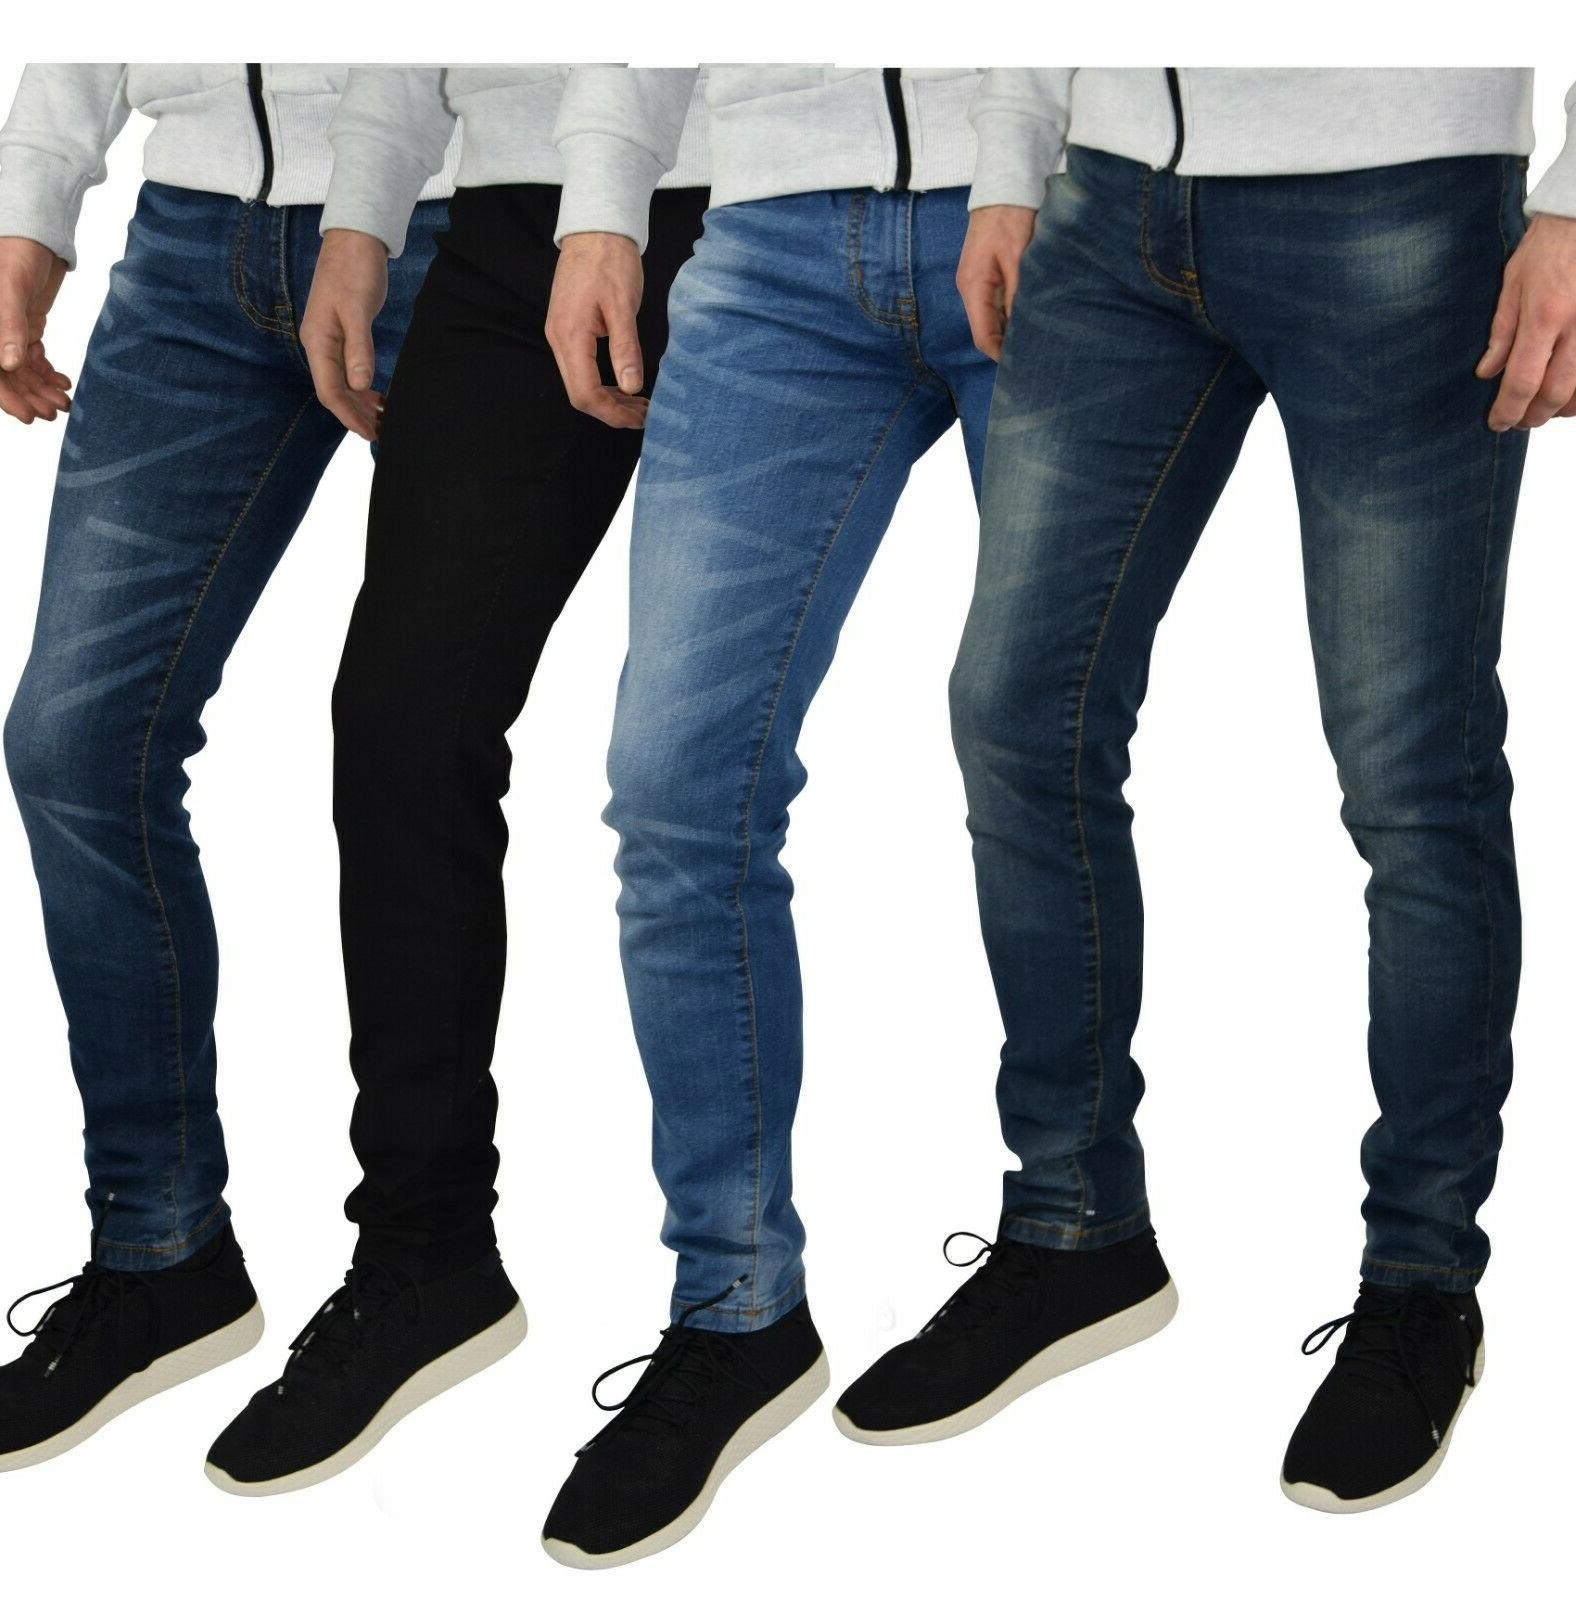 mens slim fit stretch jeans comfy fashionable